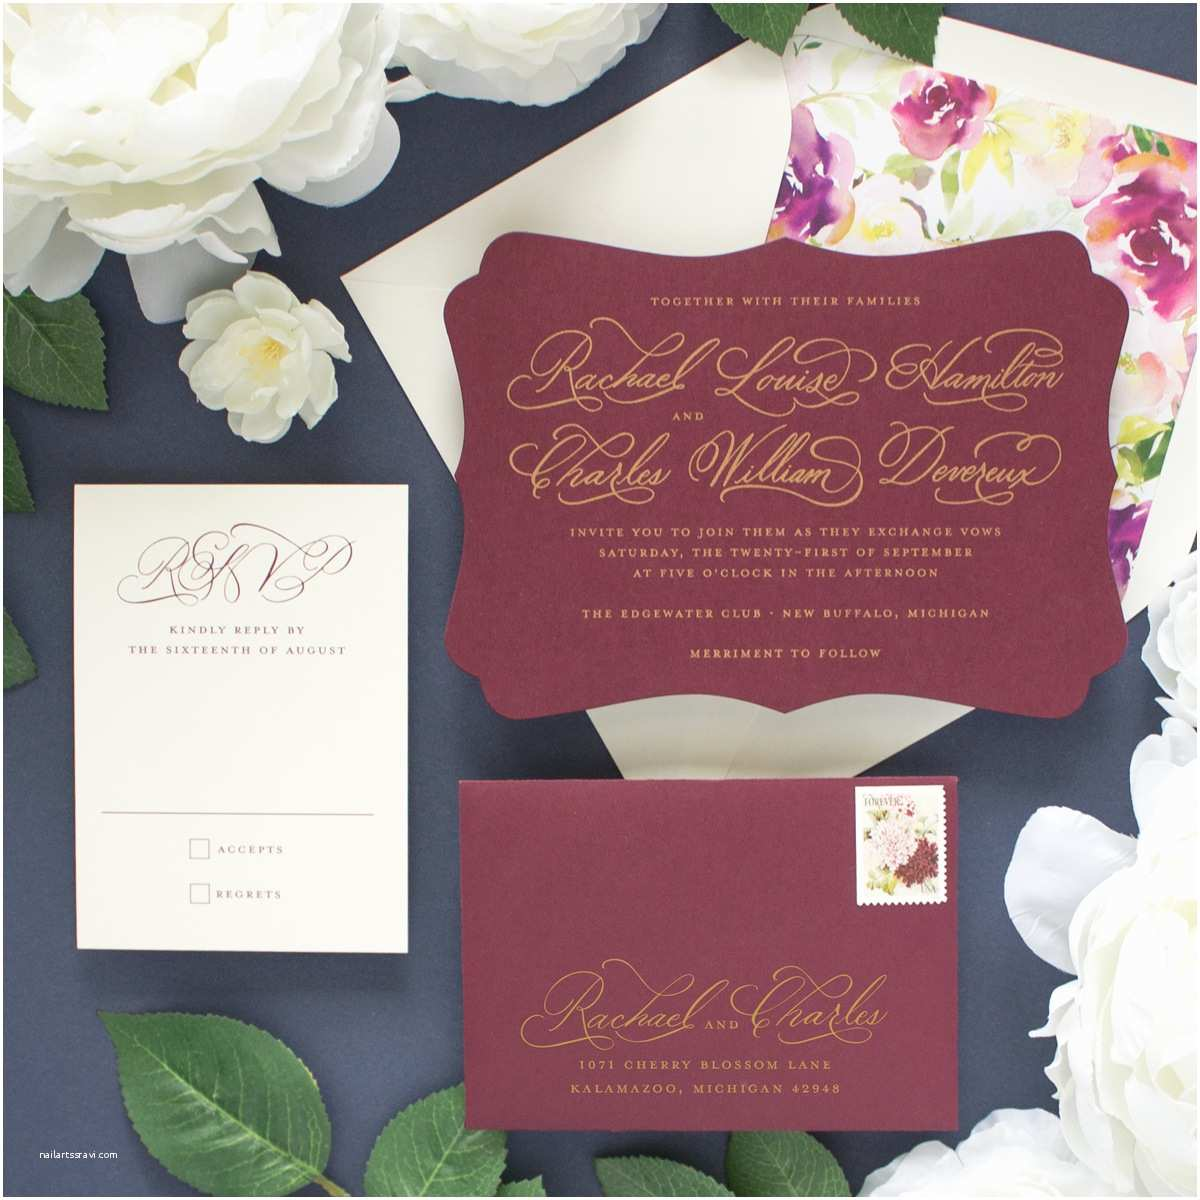 Burgundy themed Wedding Invitations Cherished